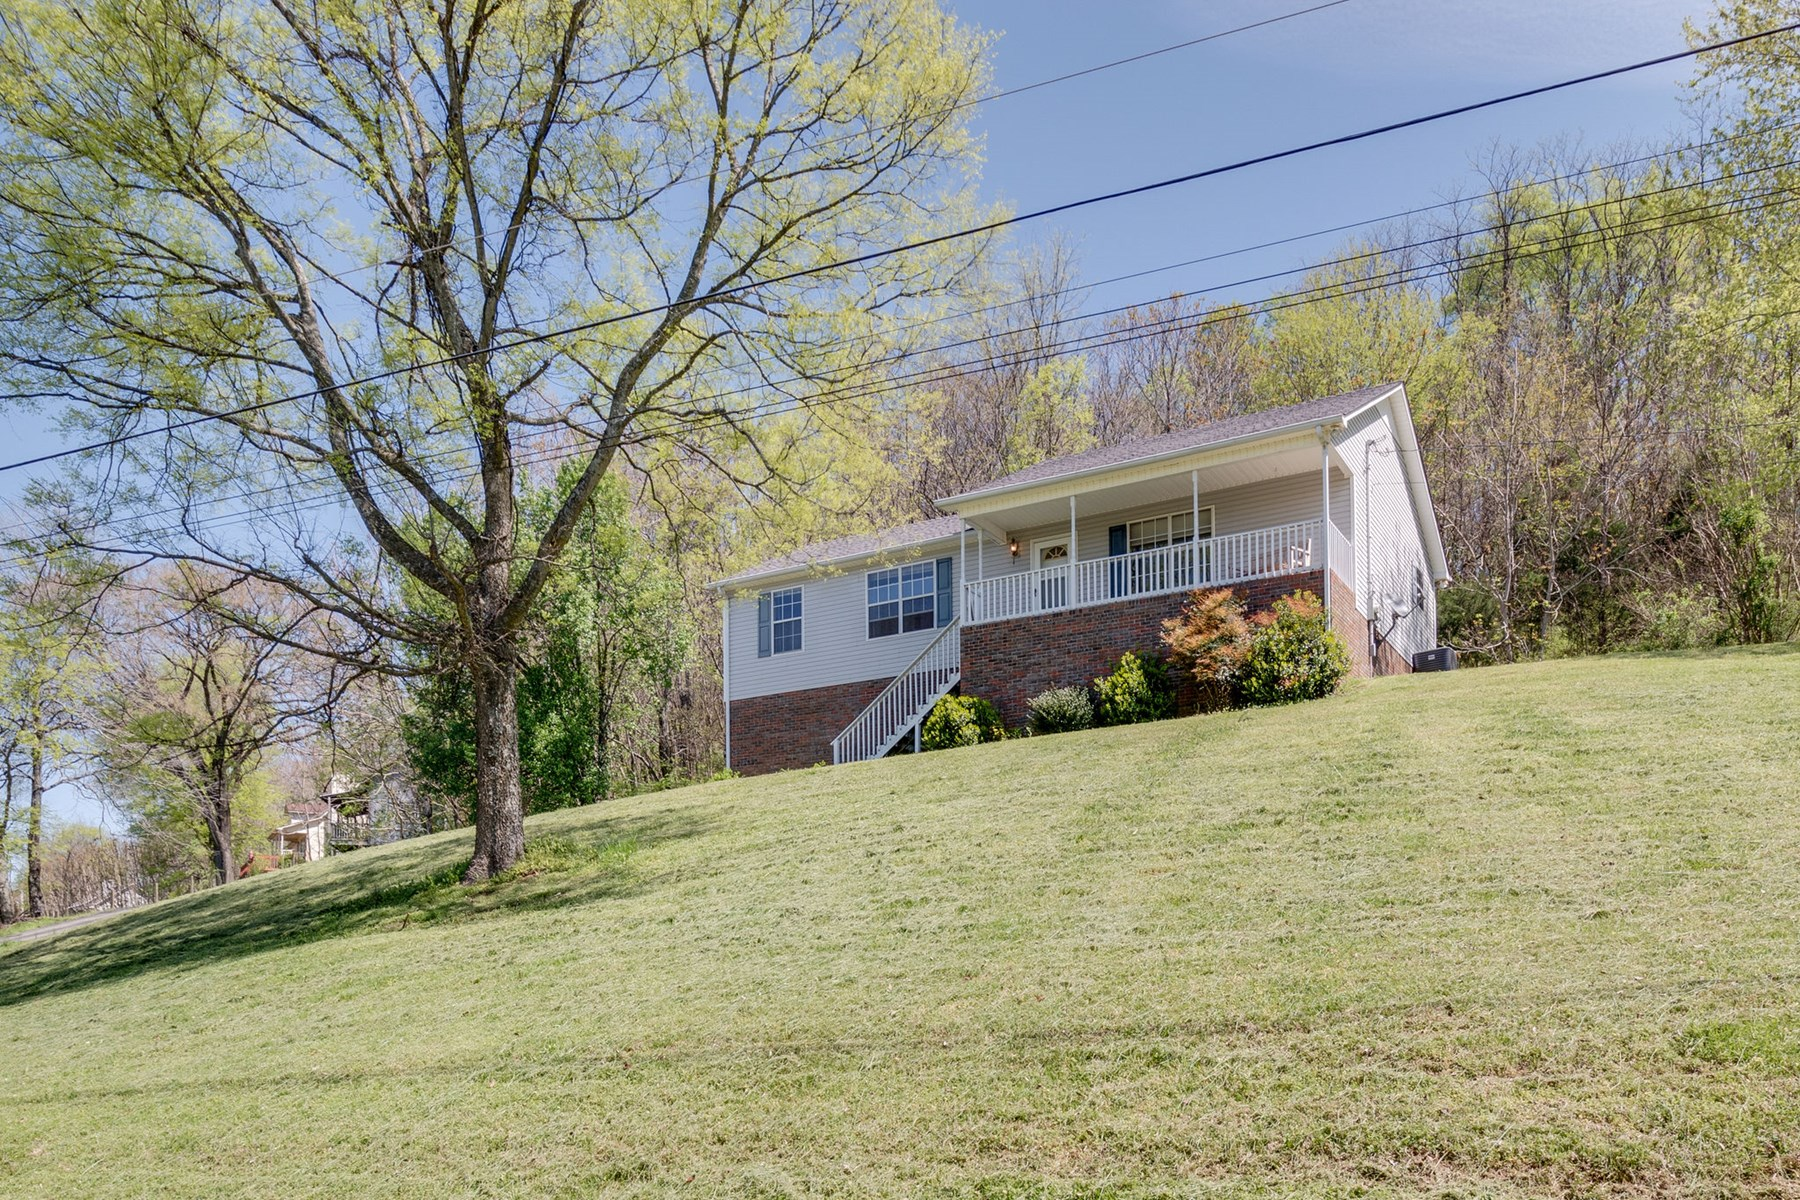 Mount Pleasant, Tennessee Hilltop Home for Sale